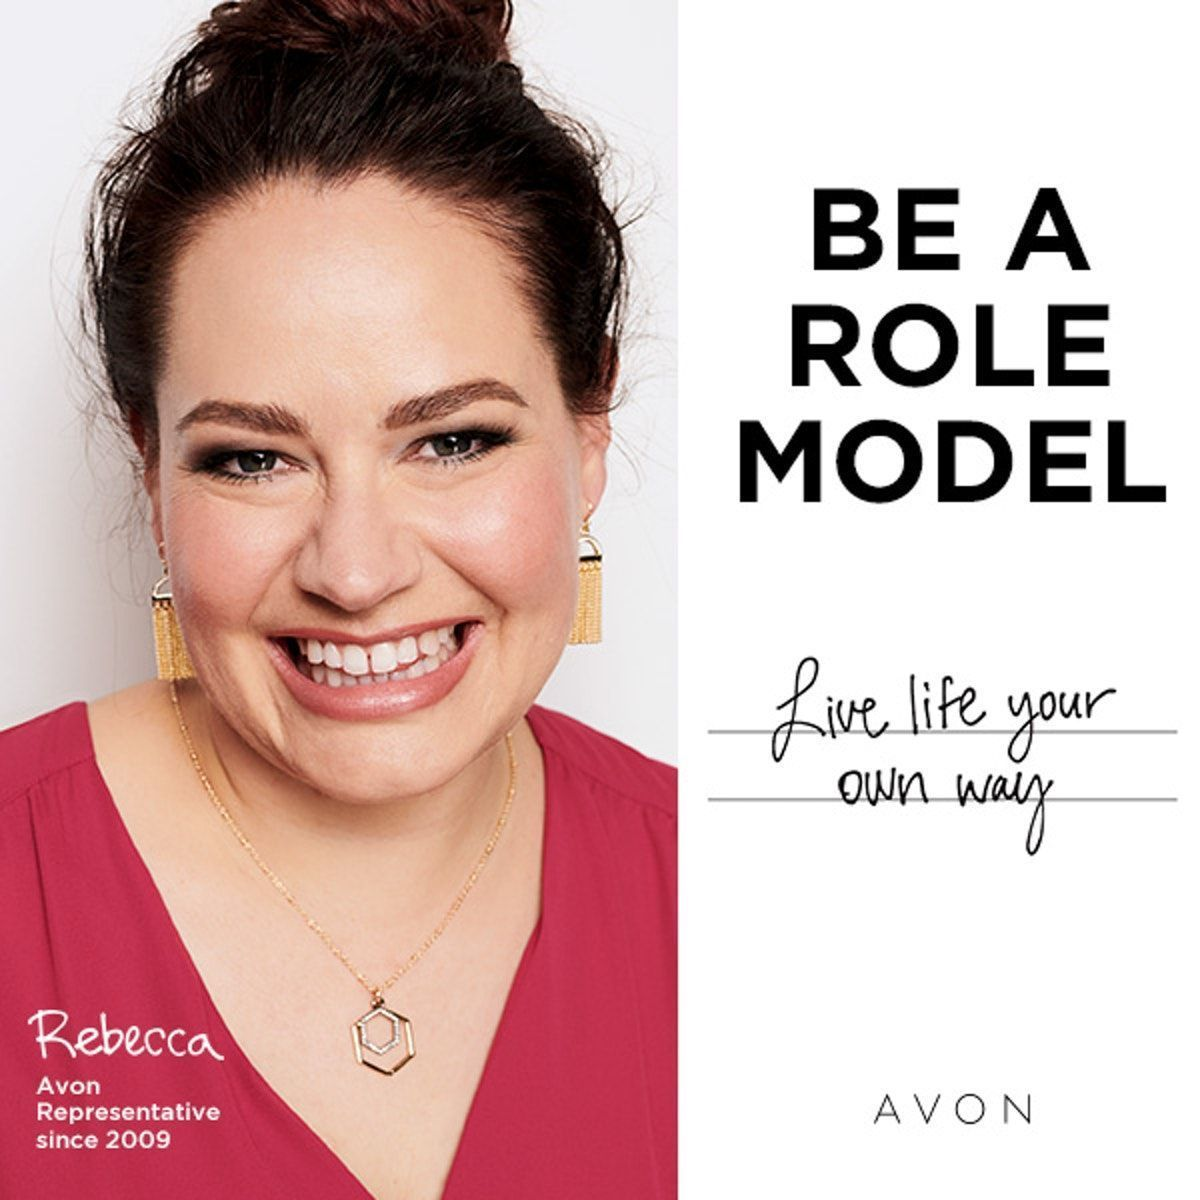 Be a role model! Live life your way as an Avon